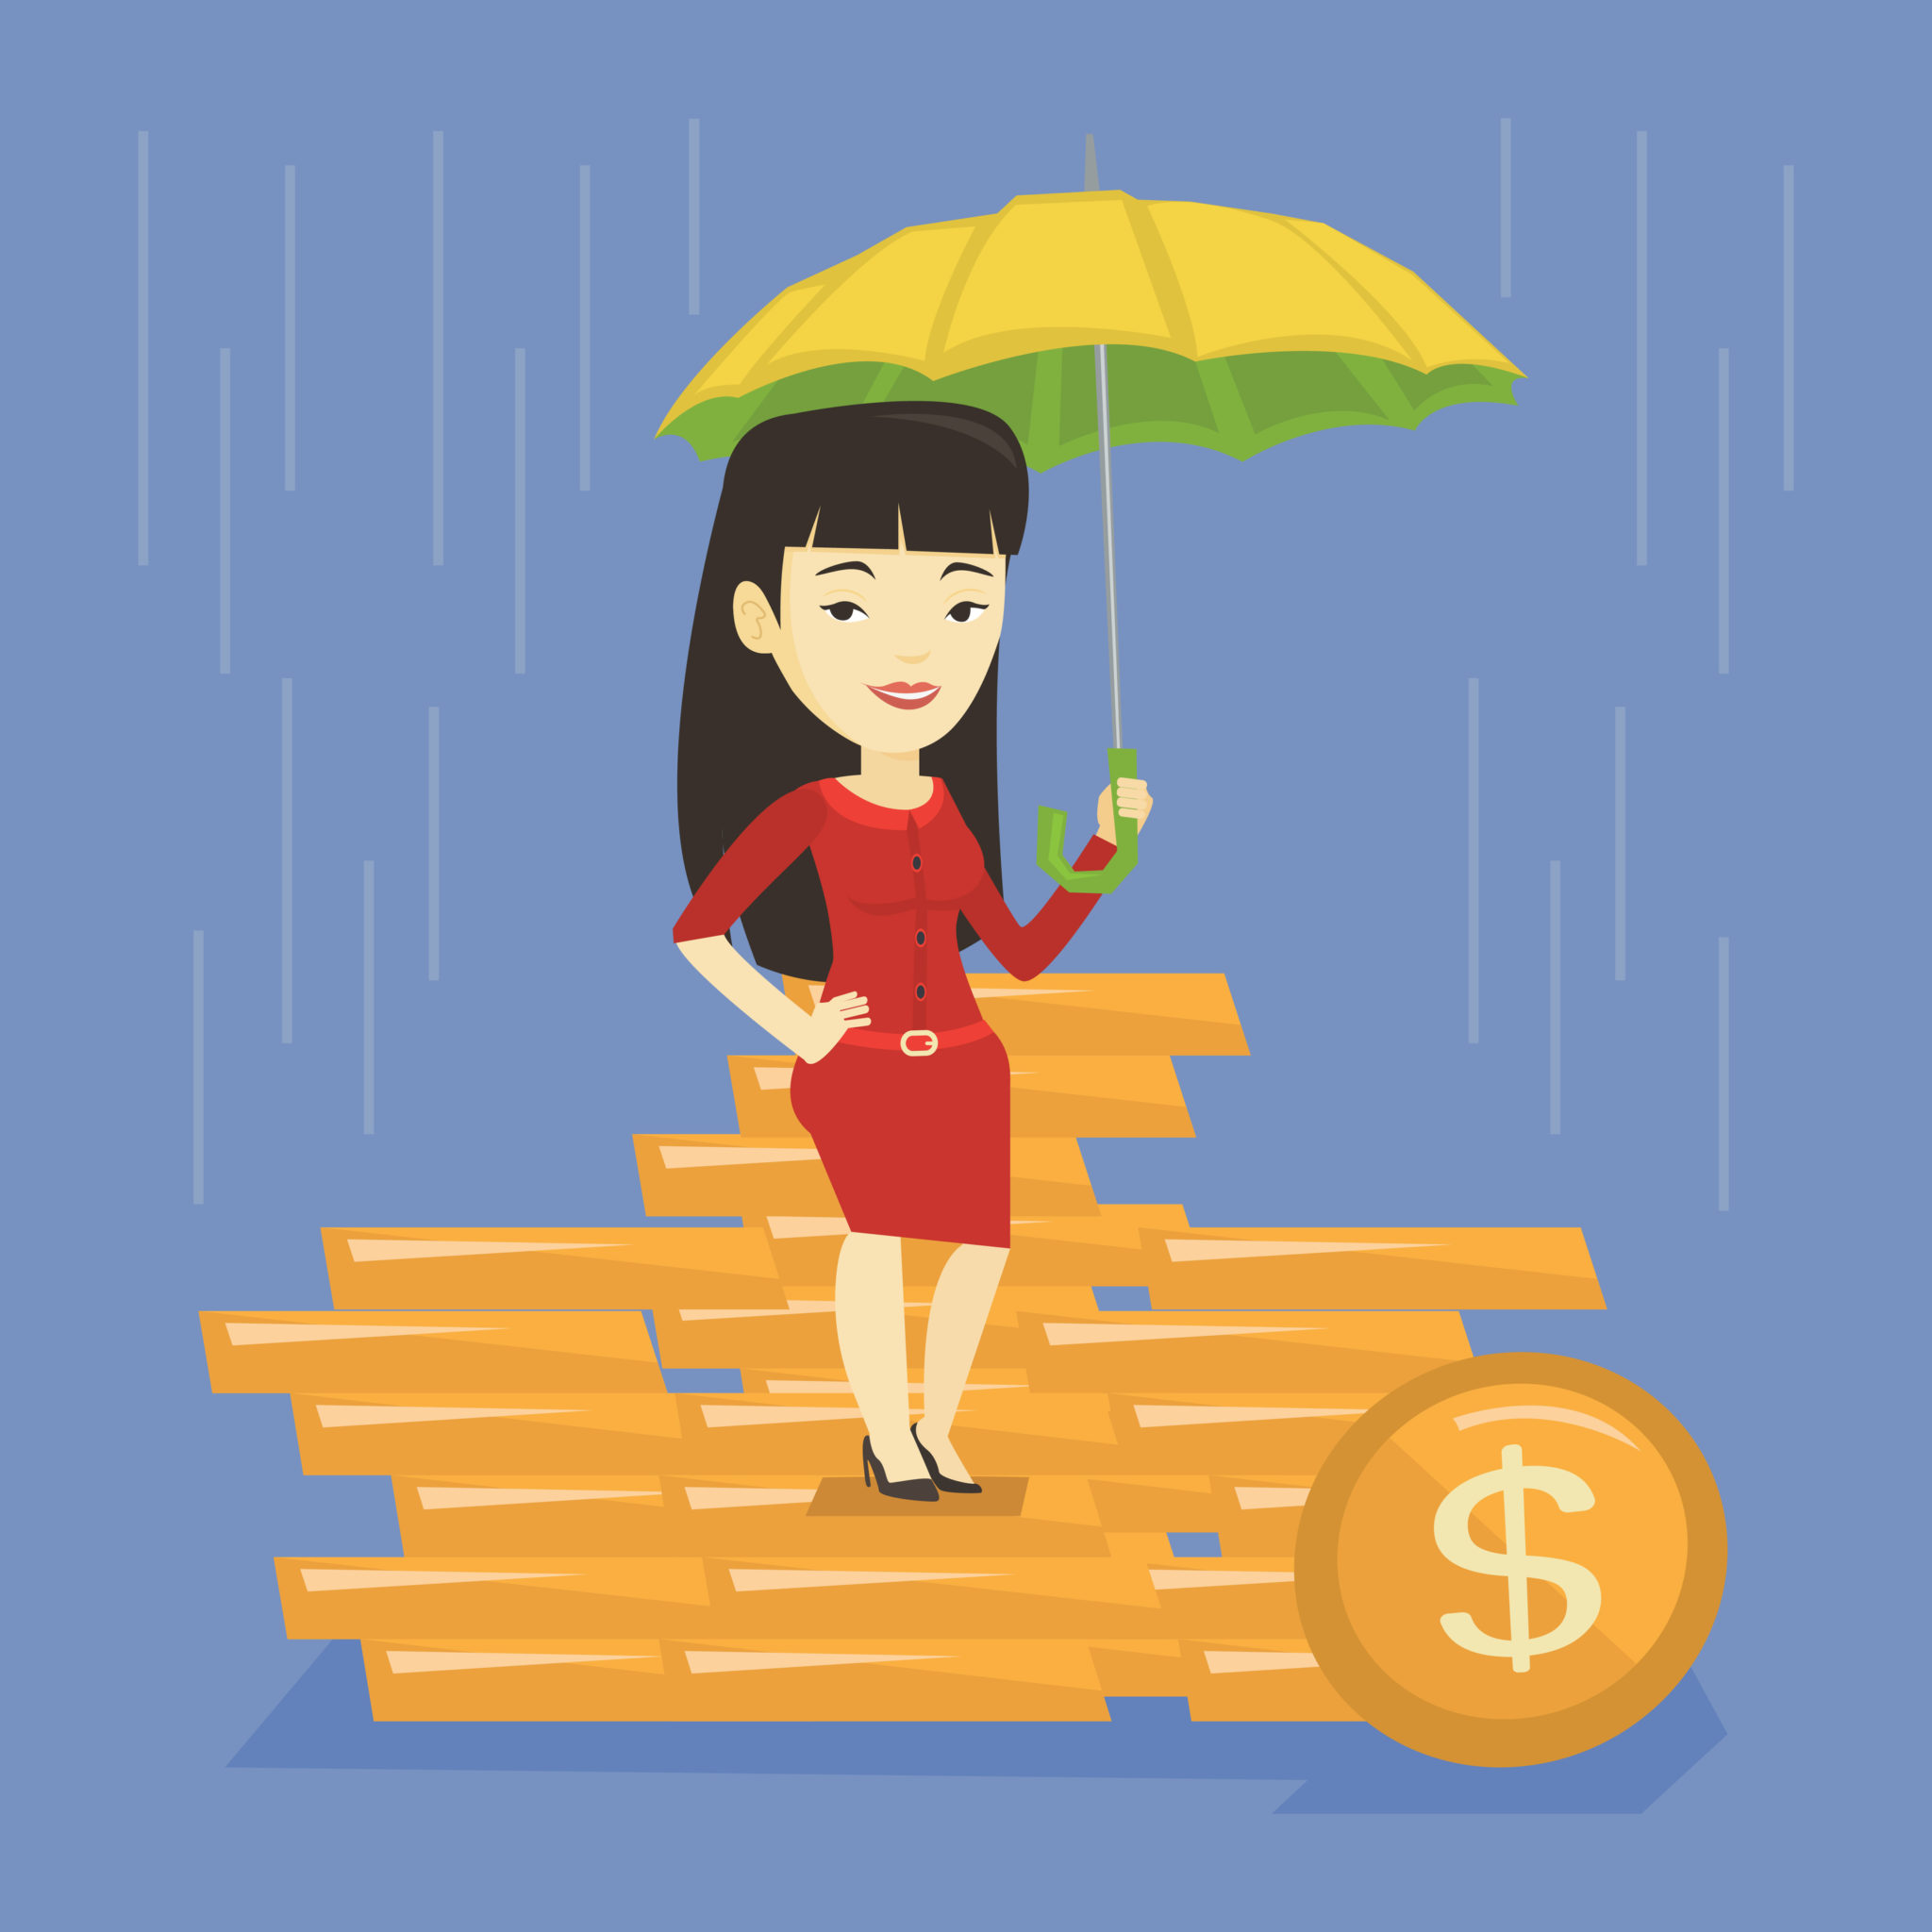 Umbrella Insurance - A chat with Shannon Stiles